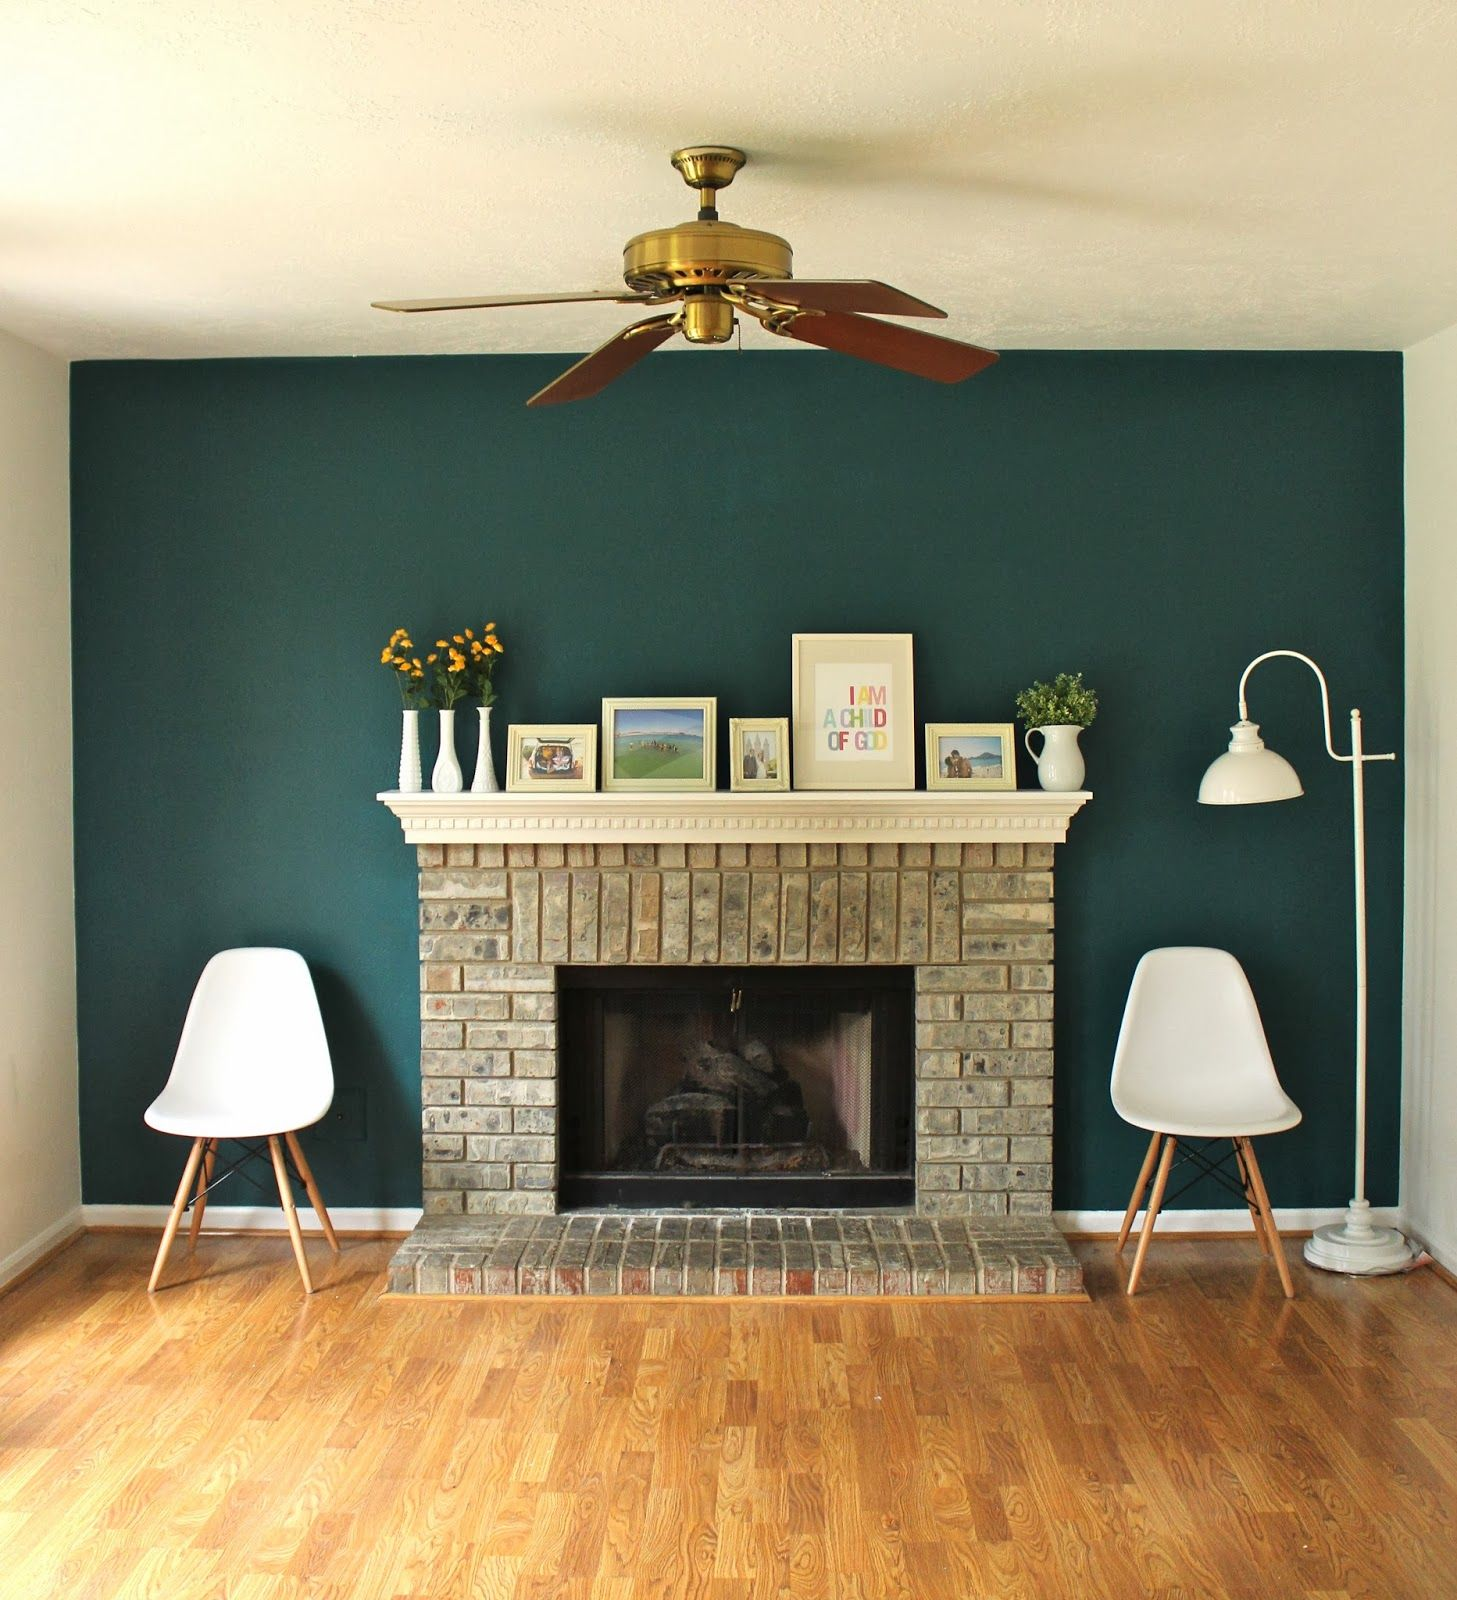 Benjamin Moore Colors For Your Living Room Decor: Benjamin Moore Oasis Blue